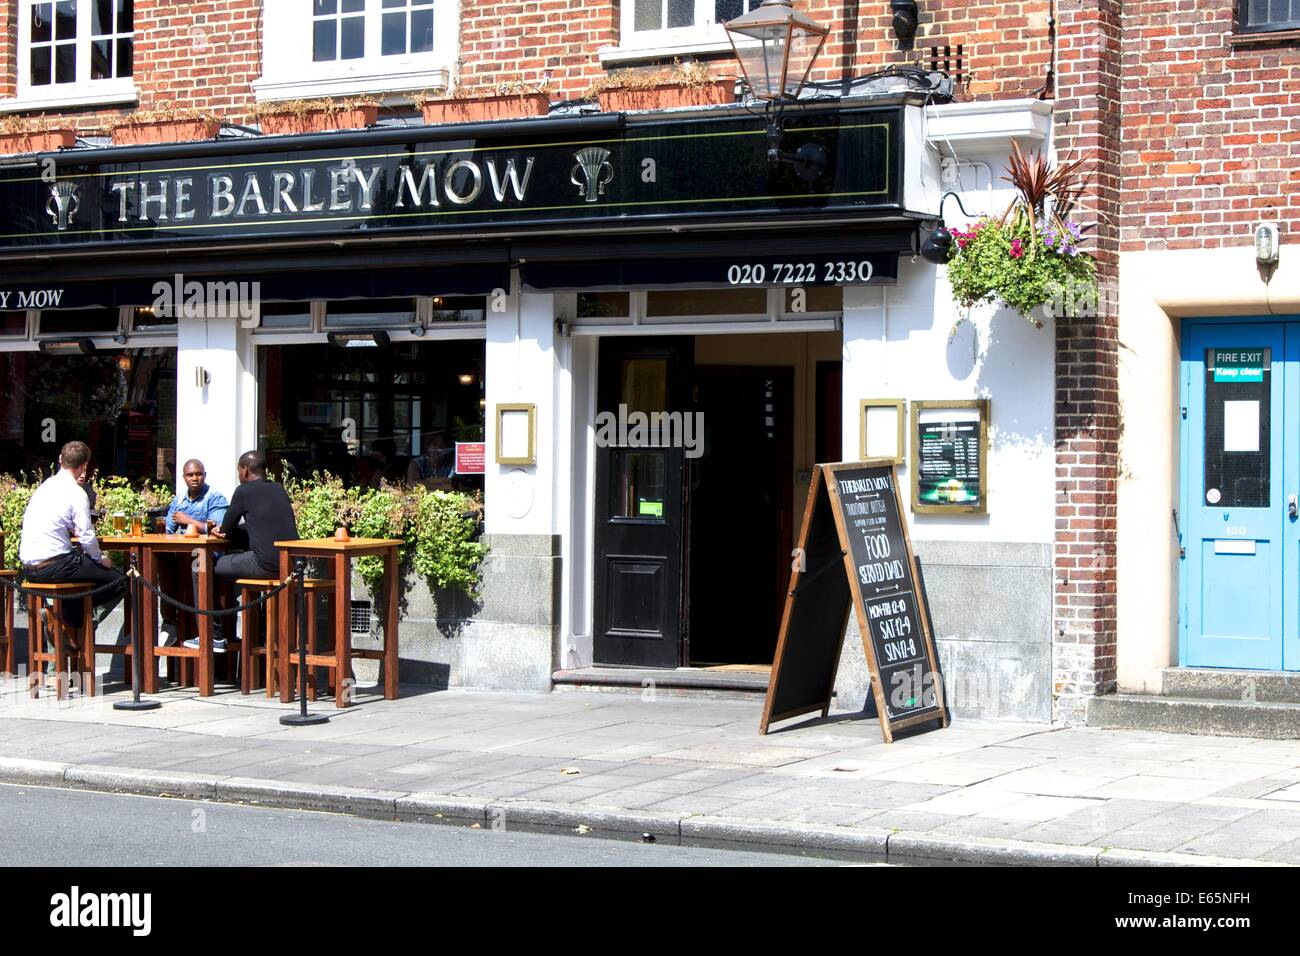 People socialising, during the lunch hour at the The Barley Mow - Stock Image